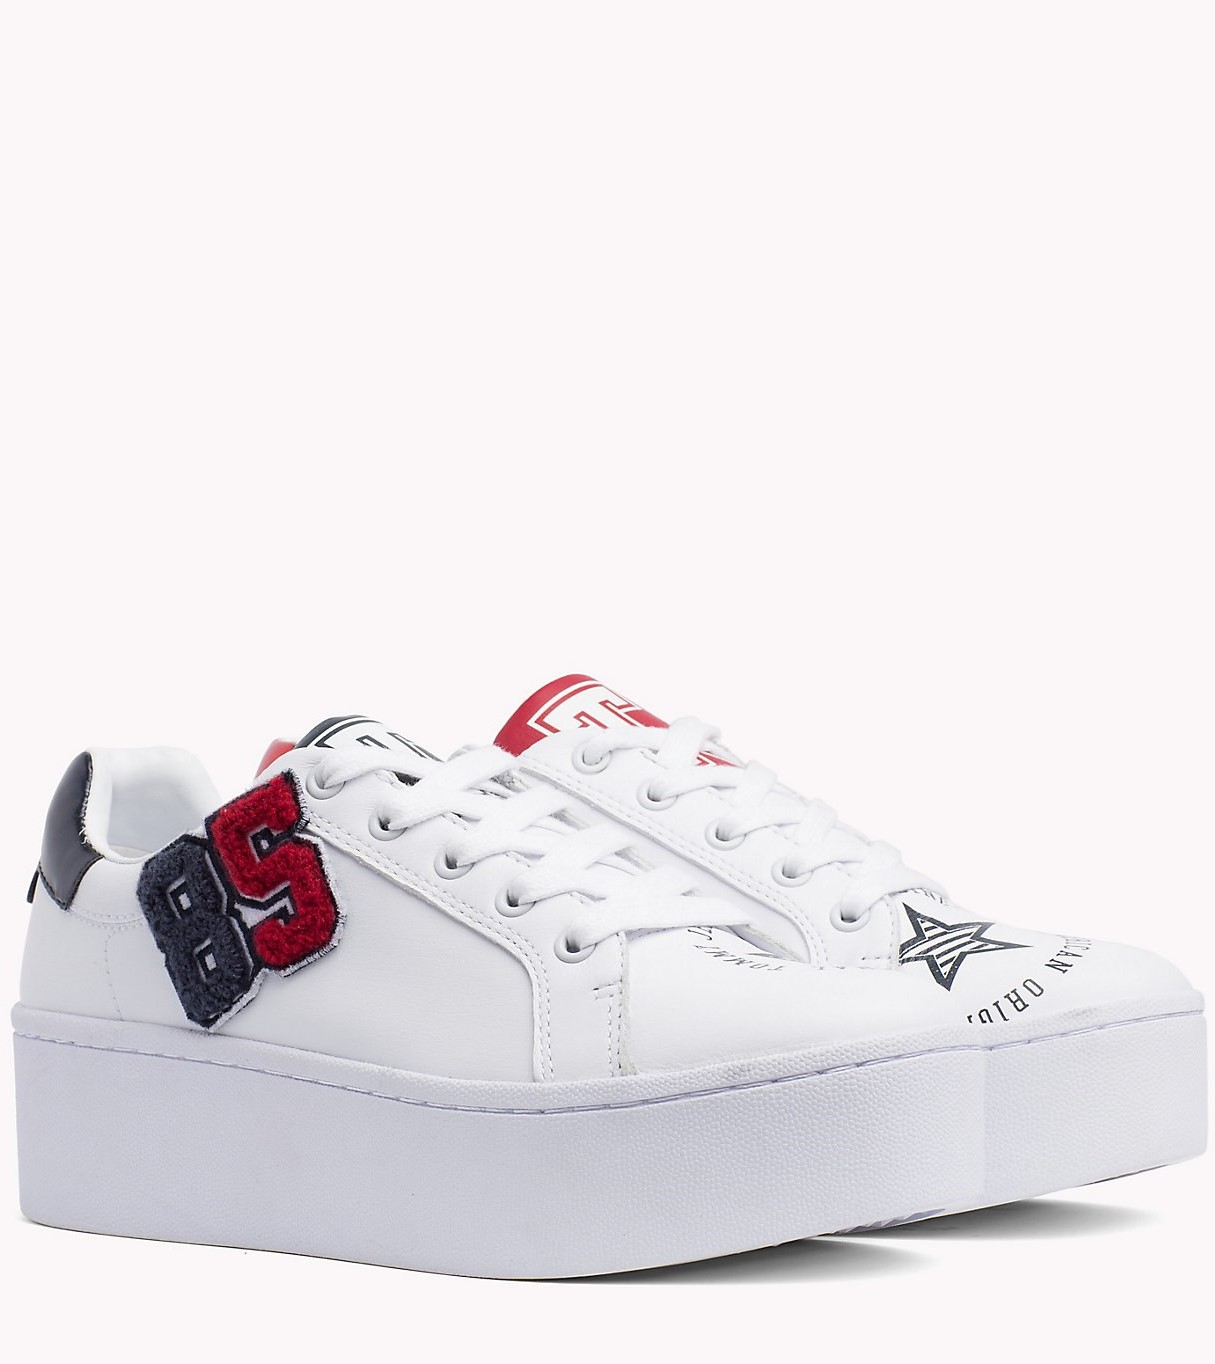 09bf6b47939 Tommy Hilfiger white leather sneakers on the TJ85 platform Icon Sneaker